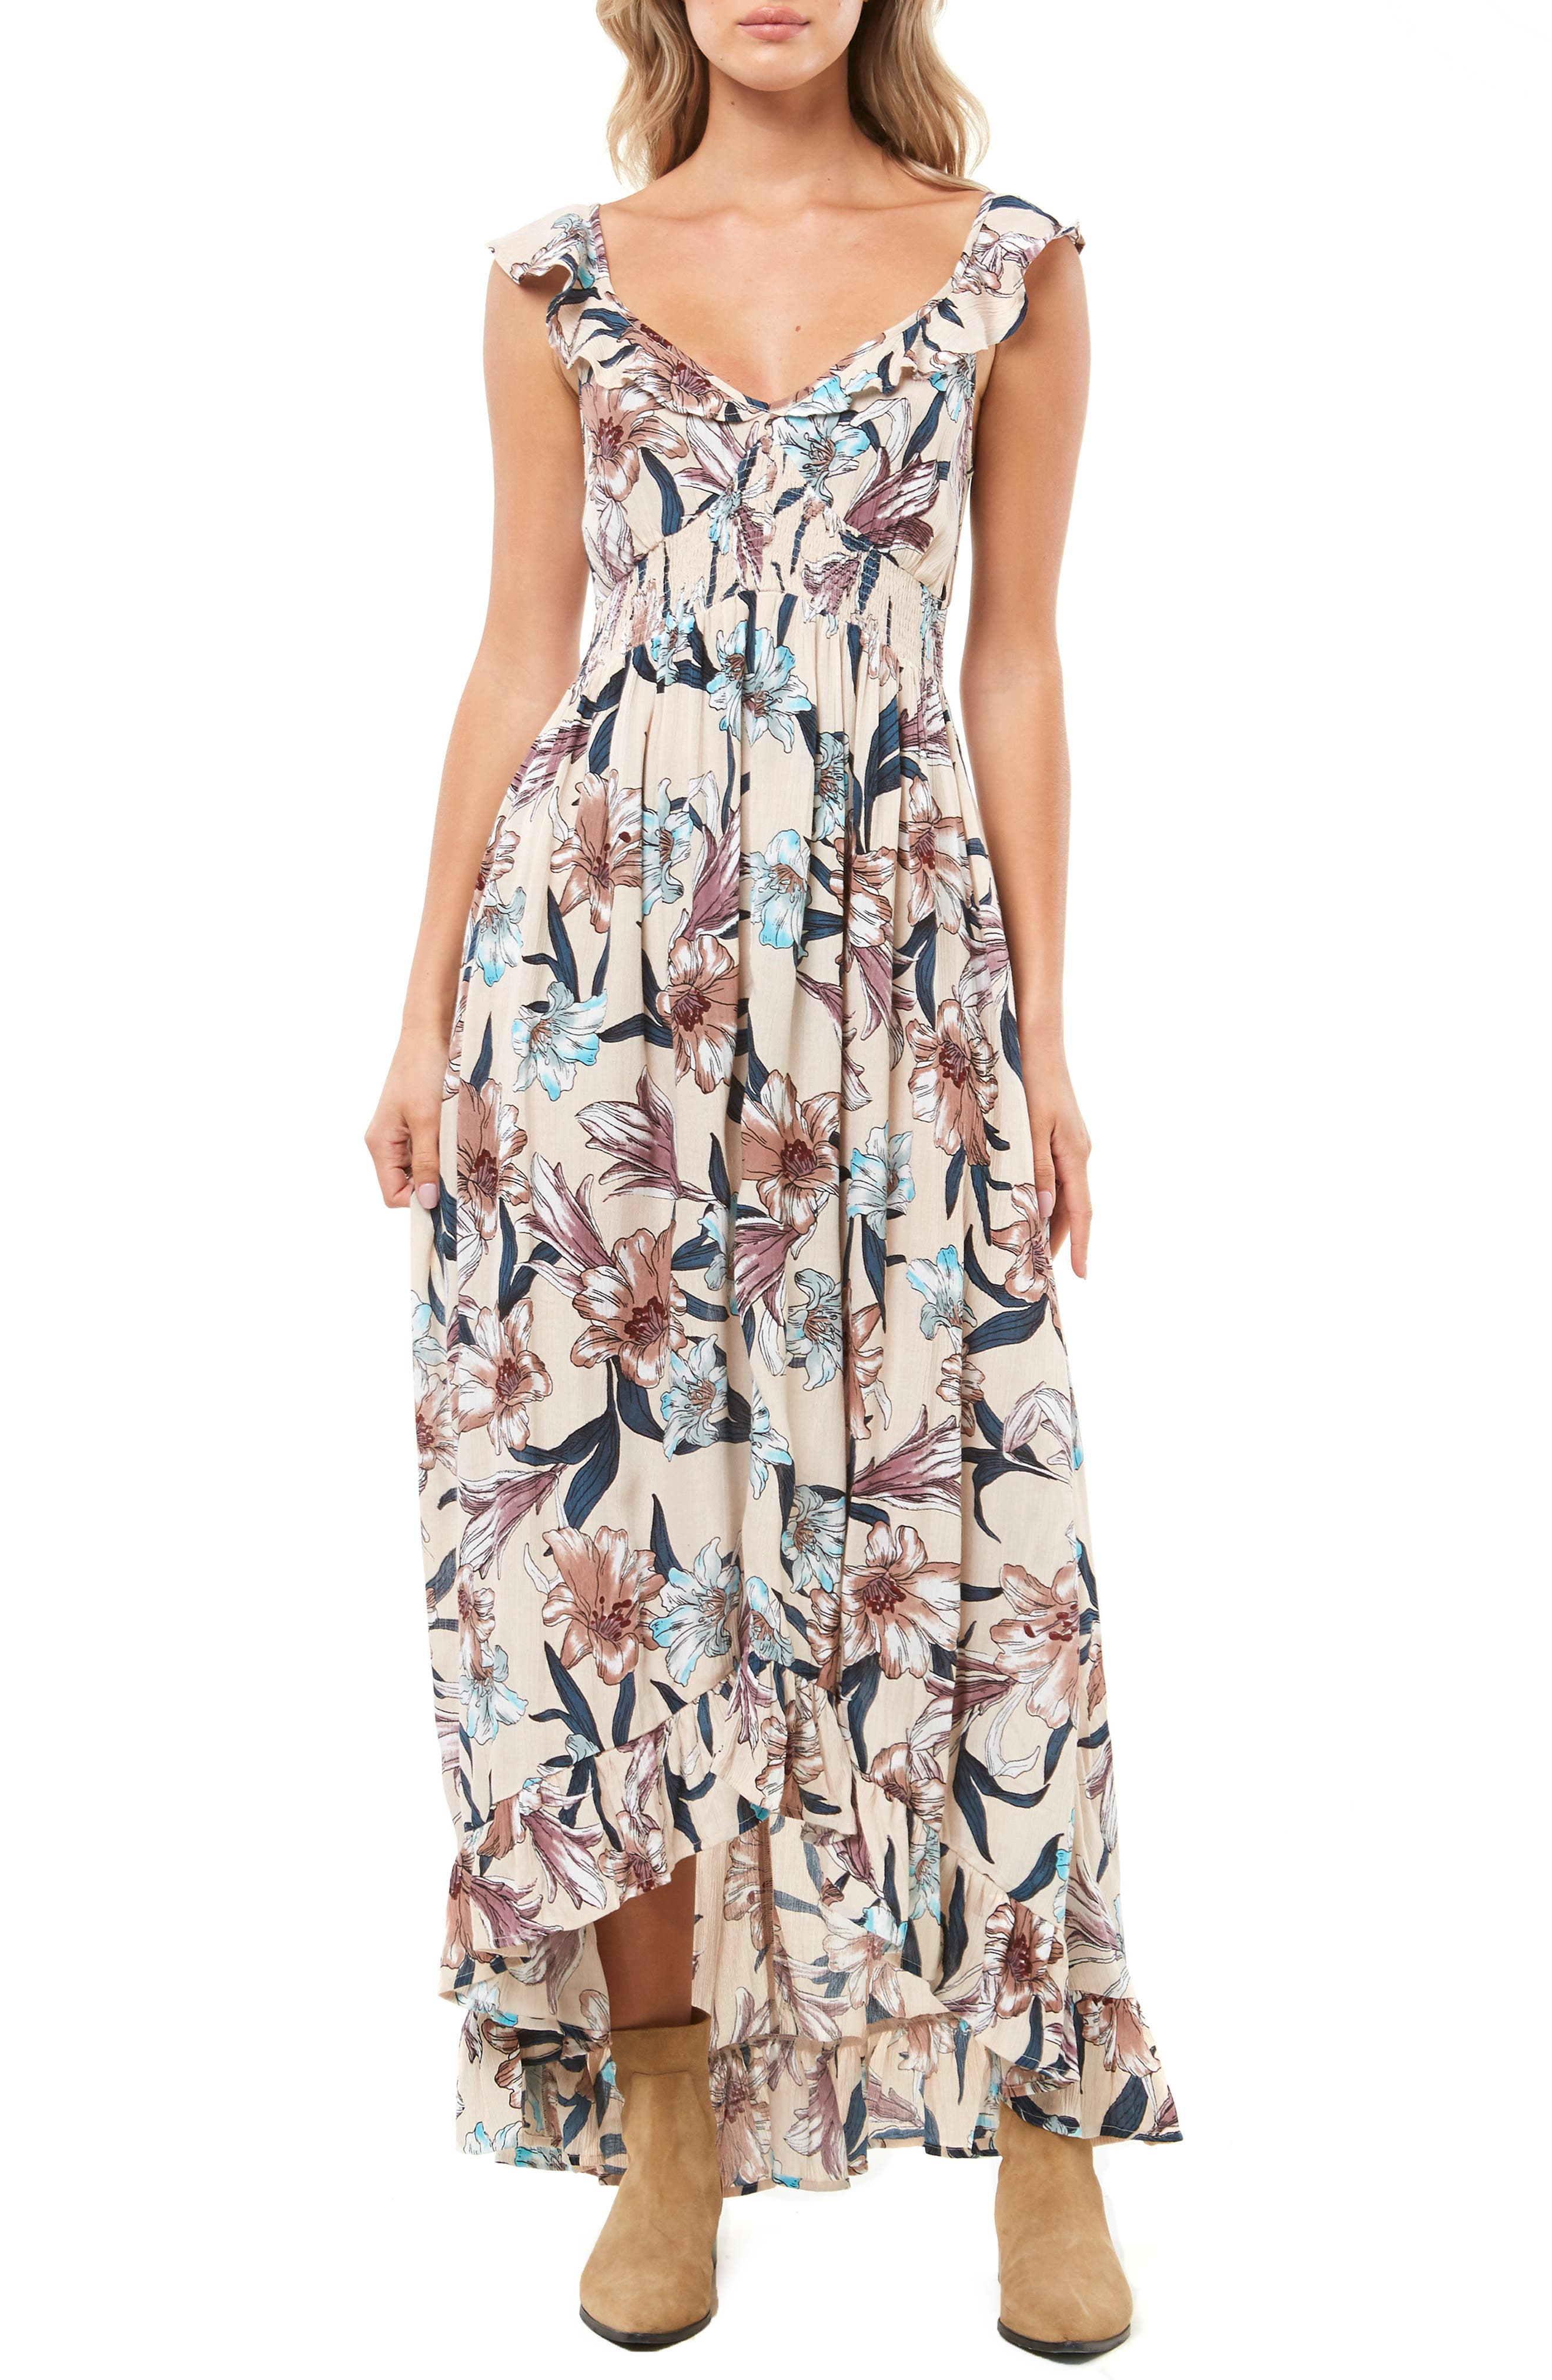 Cleo Ruffle Maxi Dress,                             Main thumbnail 1, color,                             MULTI COLORED